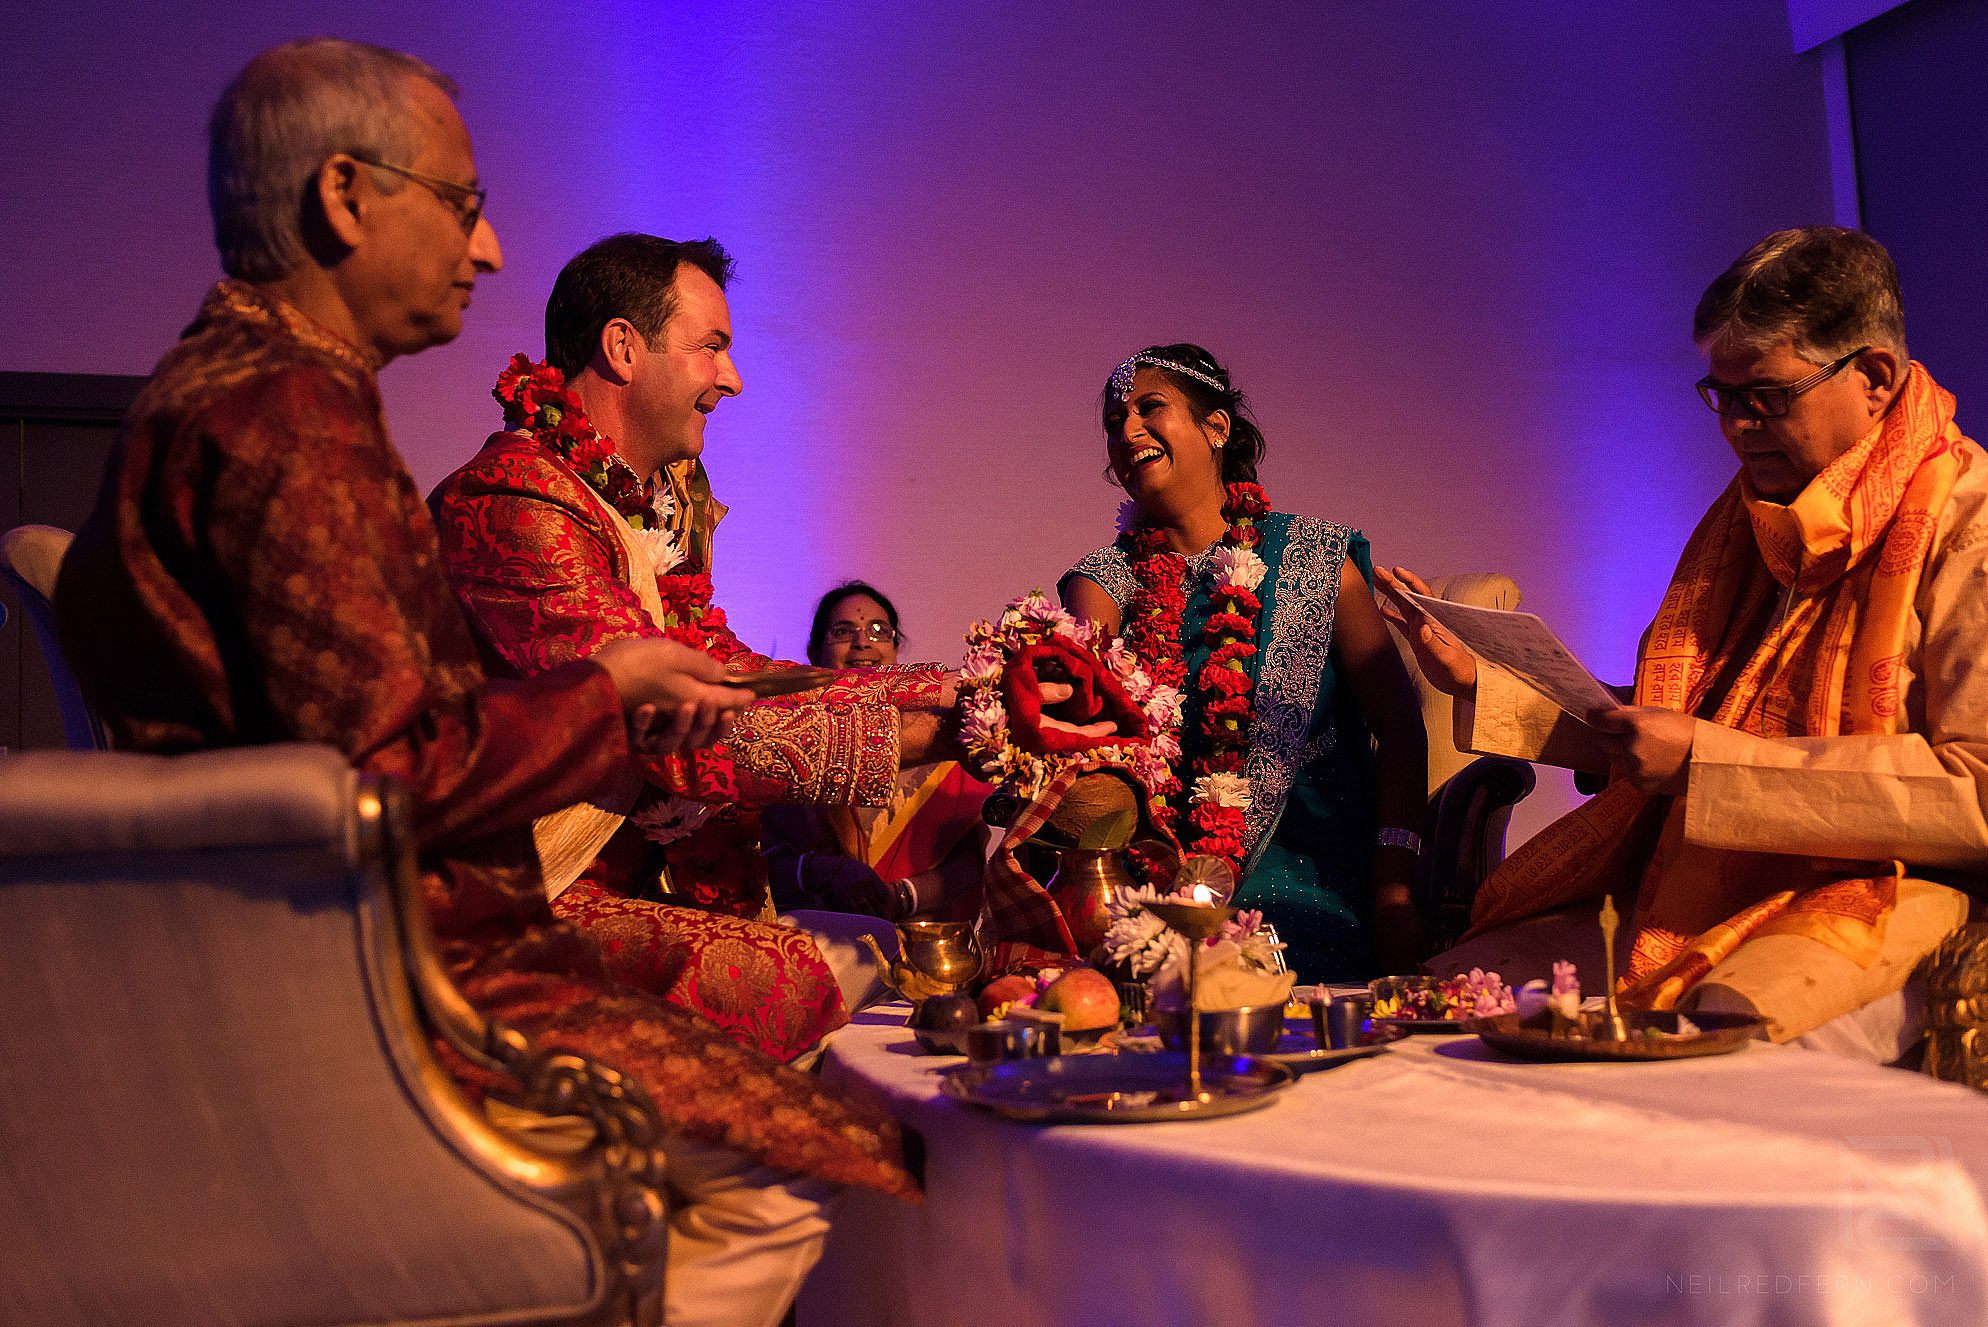 photograph of Hindu wedding service